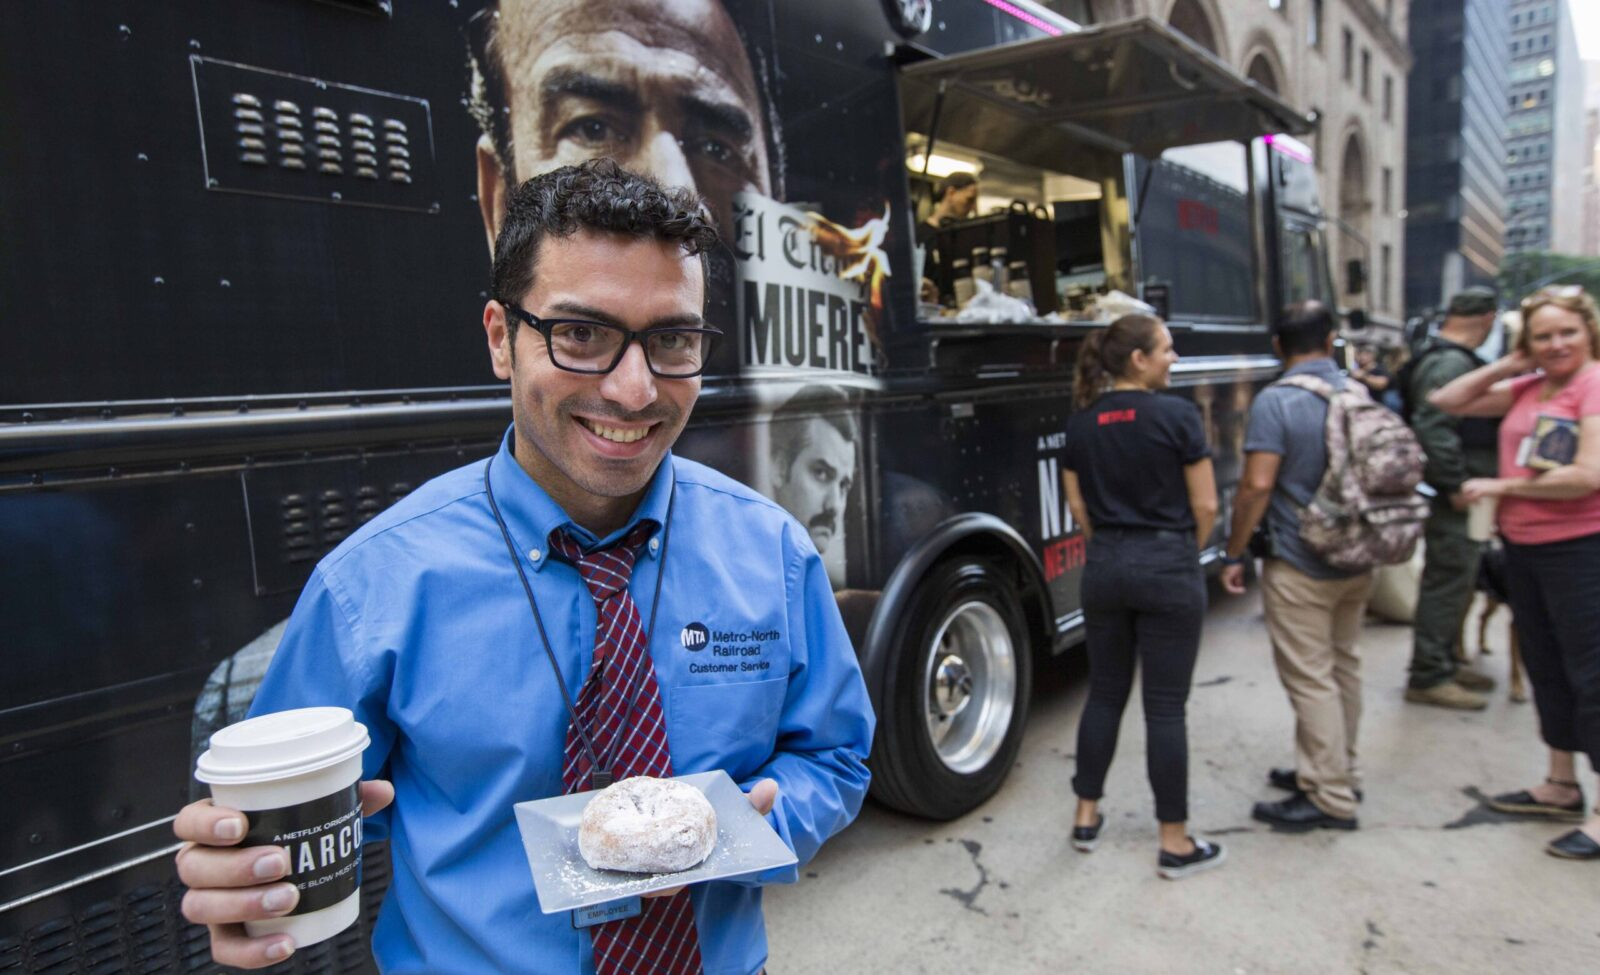 customer posing in front of narcos food truck